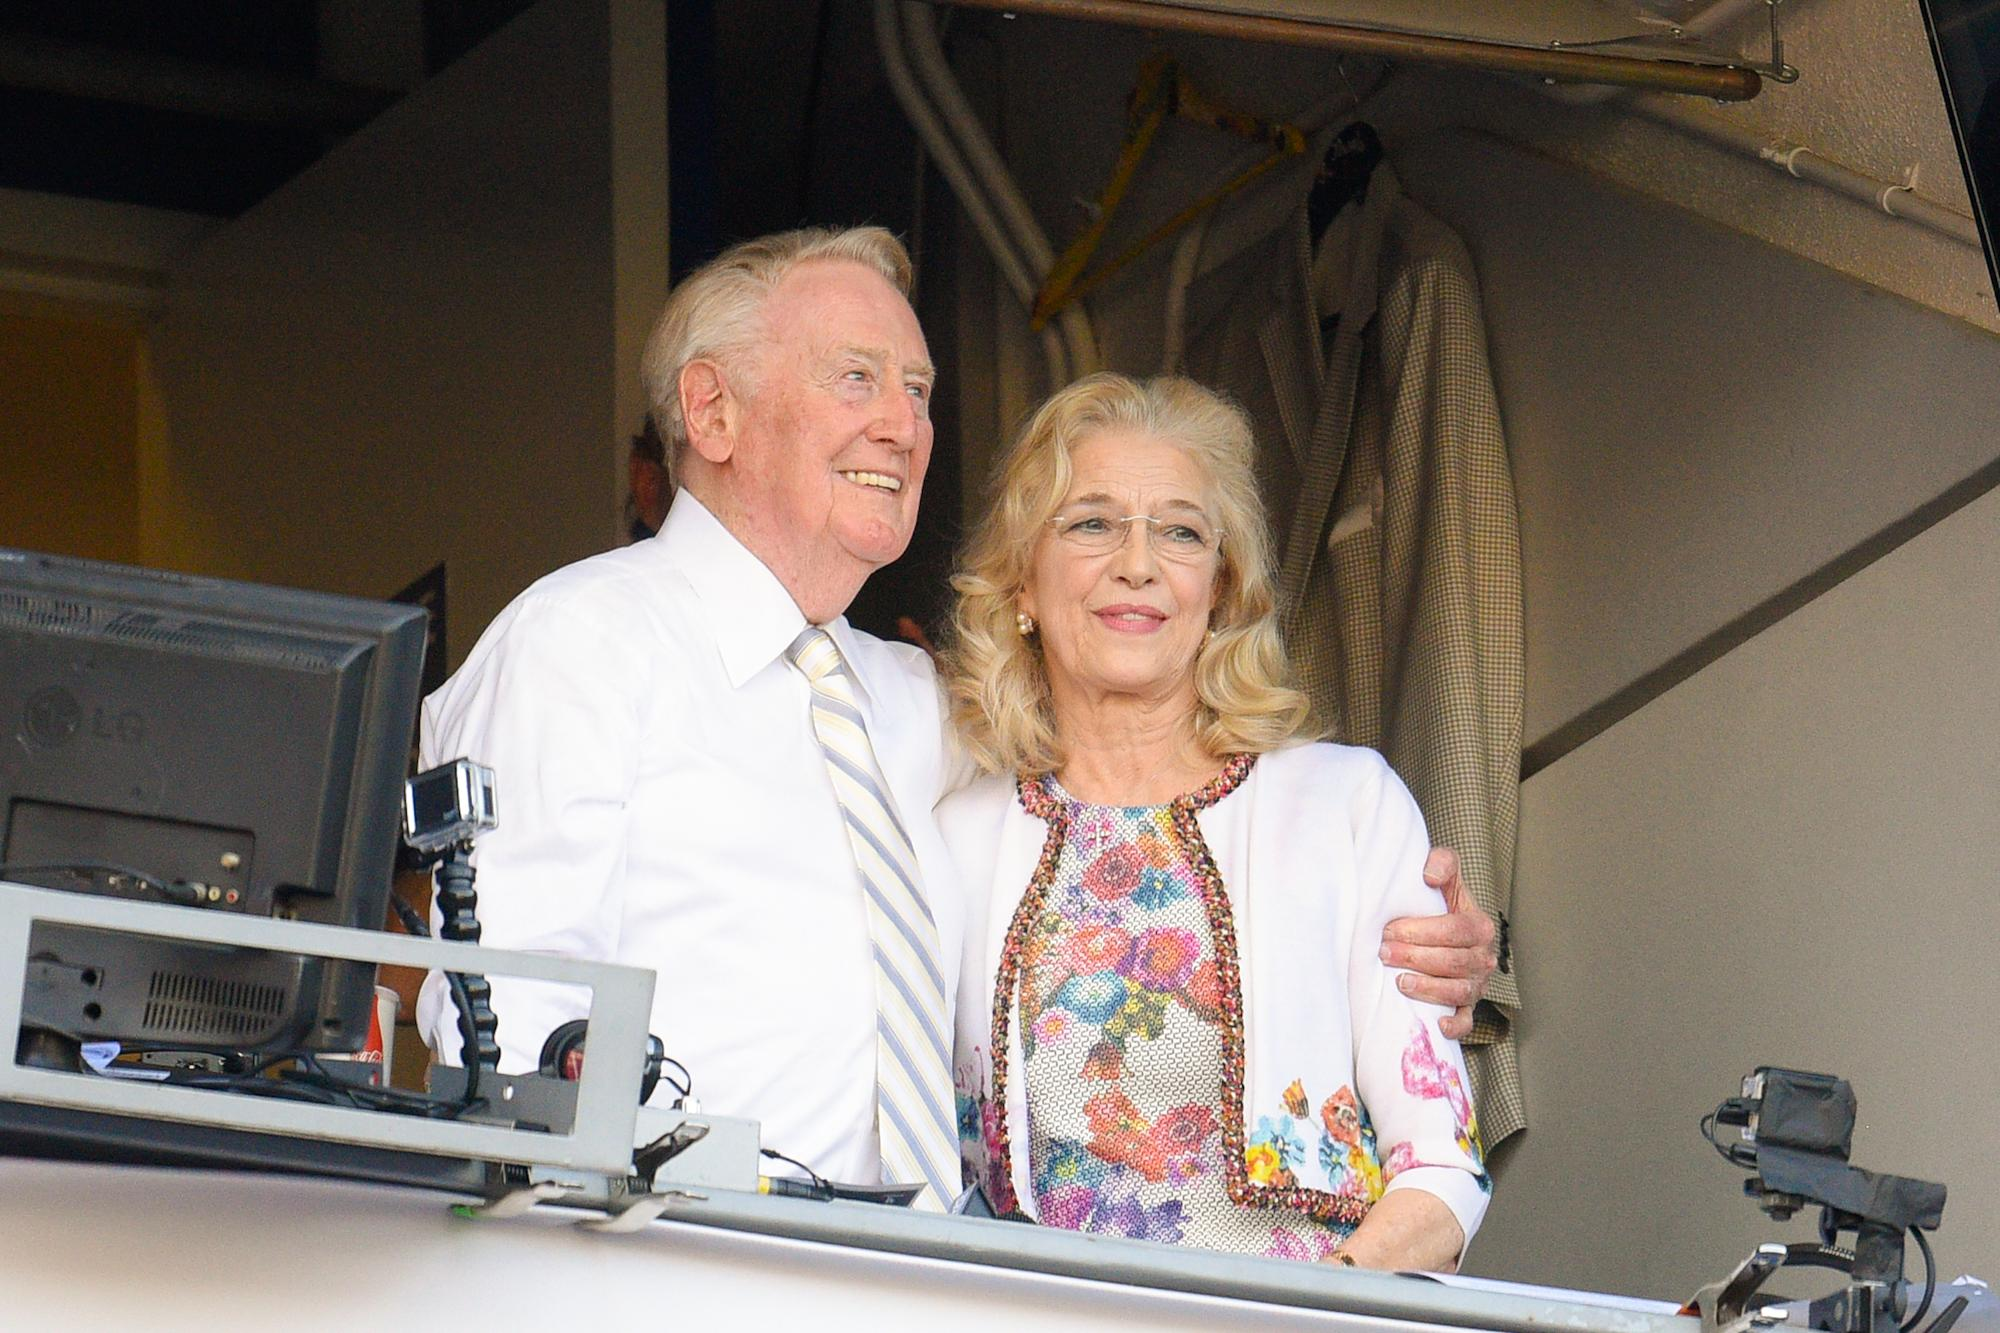 au.finance.yahoo.com: Sandra Scully — wife of Dodgers icon Vin Scully — dies after battle with ALS